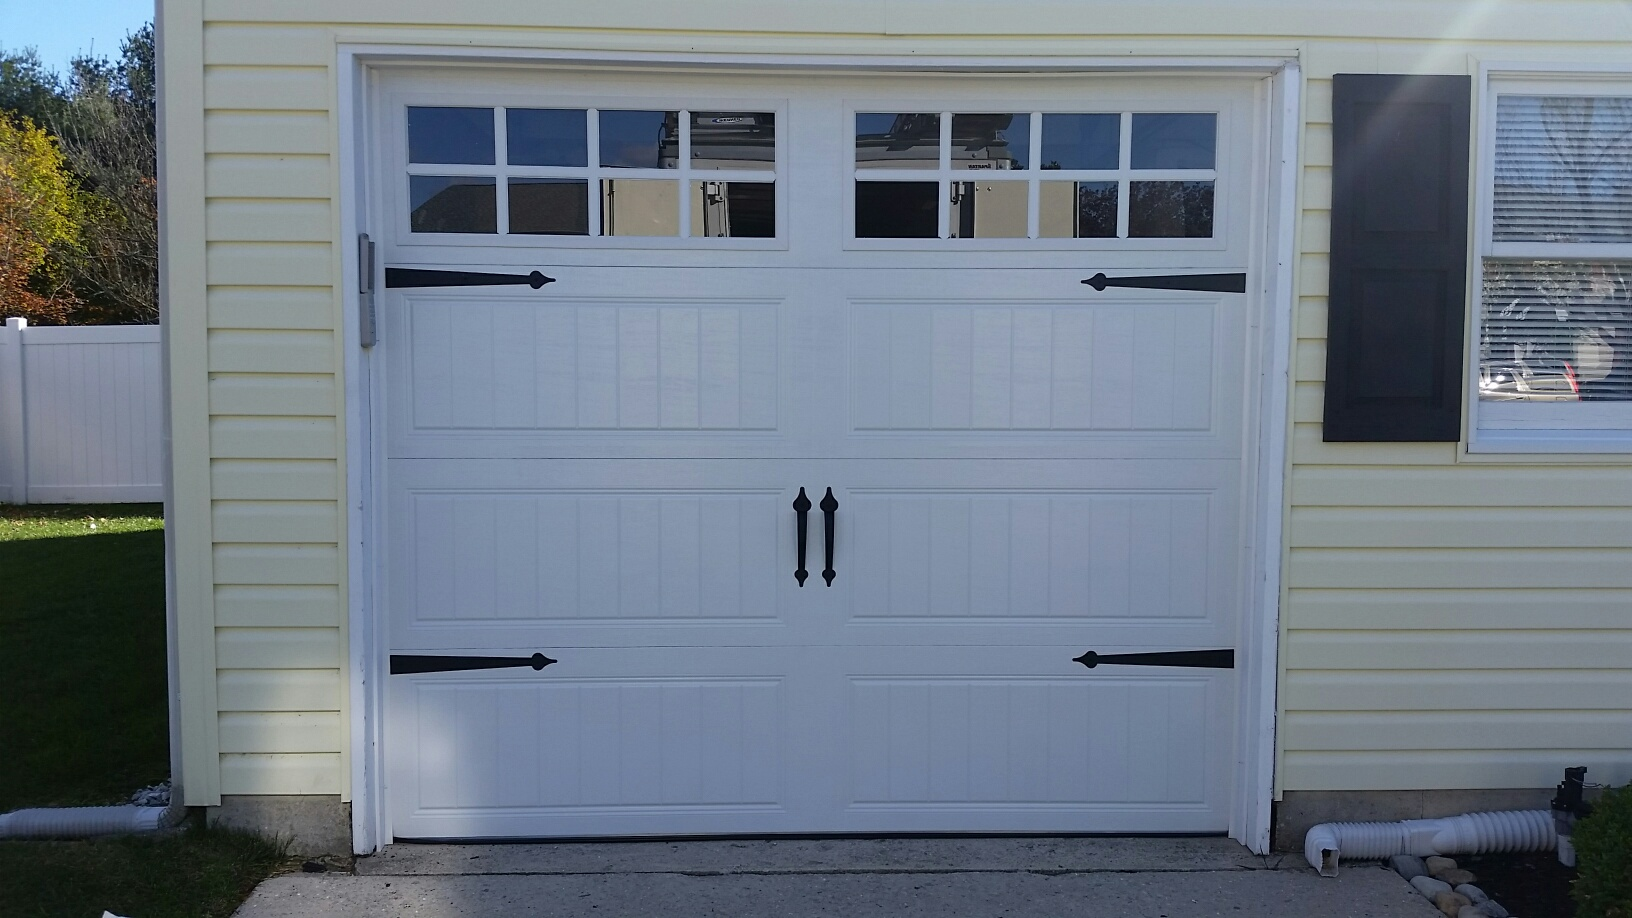 Clopay Garage Door Replacement And Install Call Us At 856 275 7766